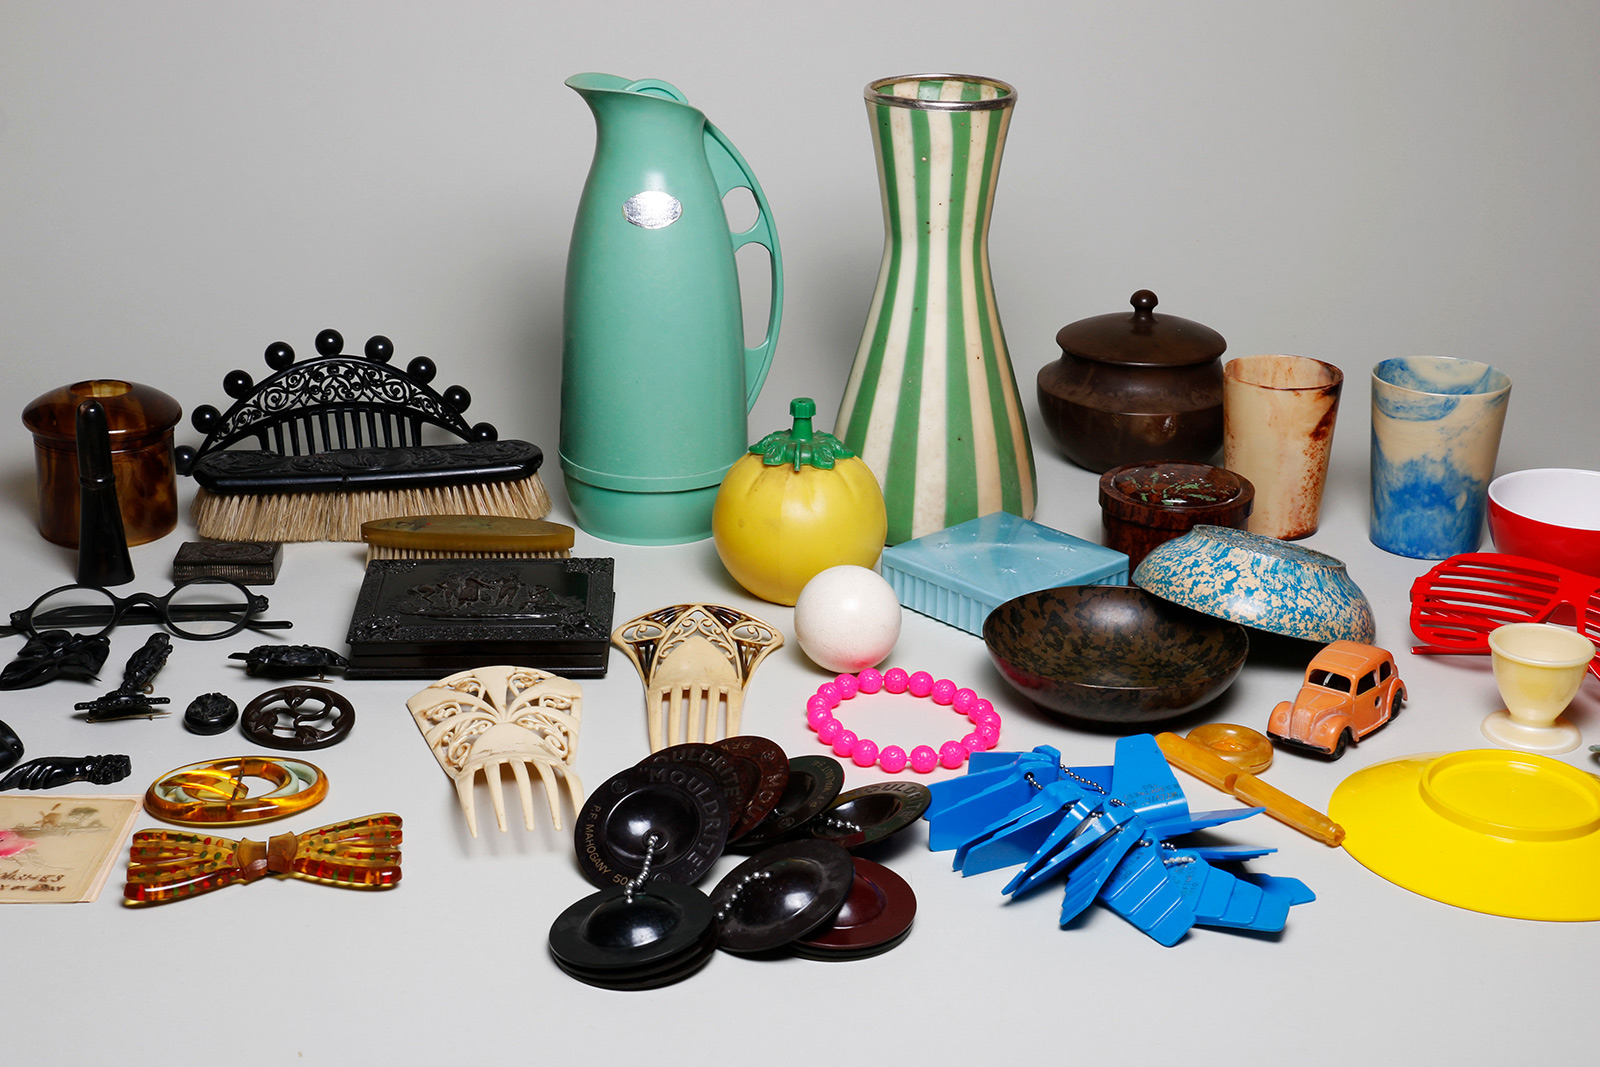 Plastic objects including combs, toys, dinnerware, pitchers, jewelry